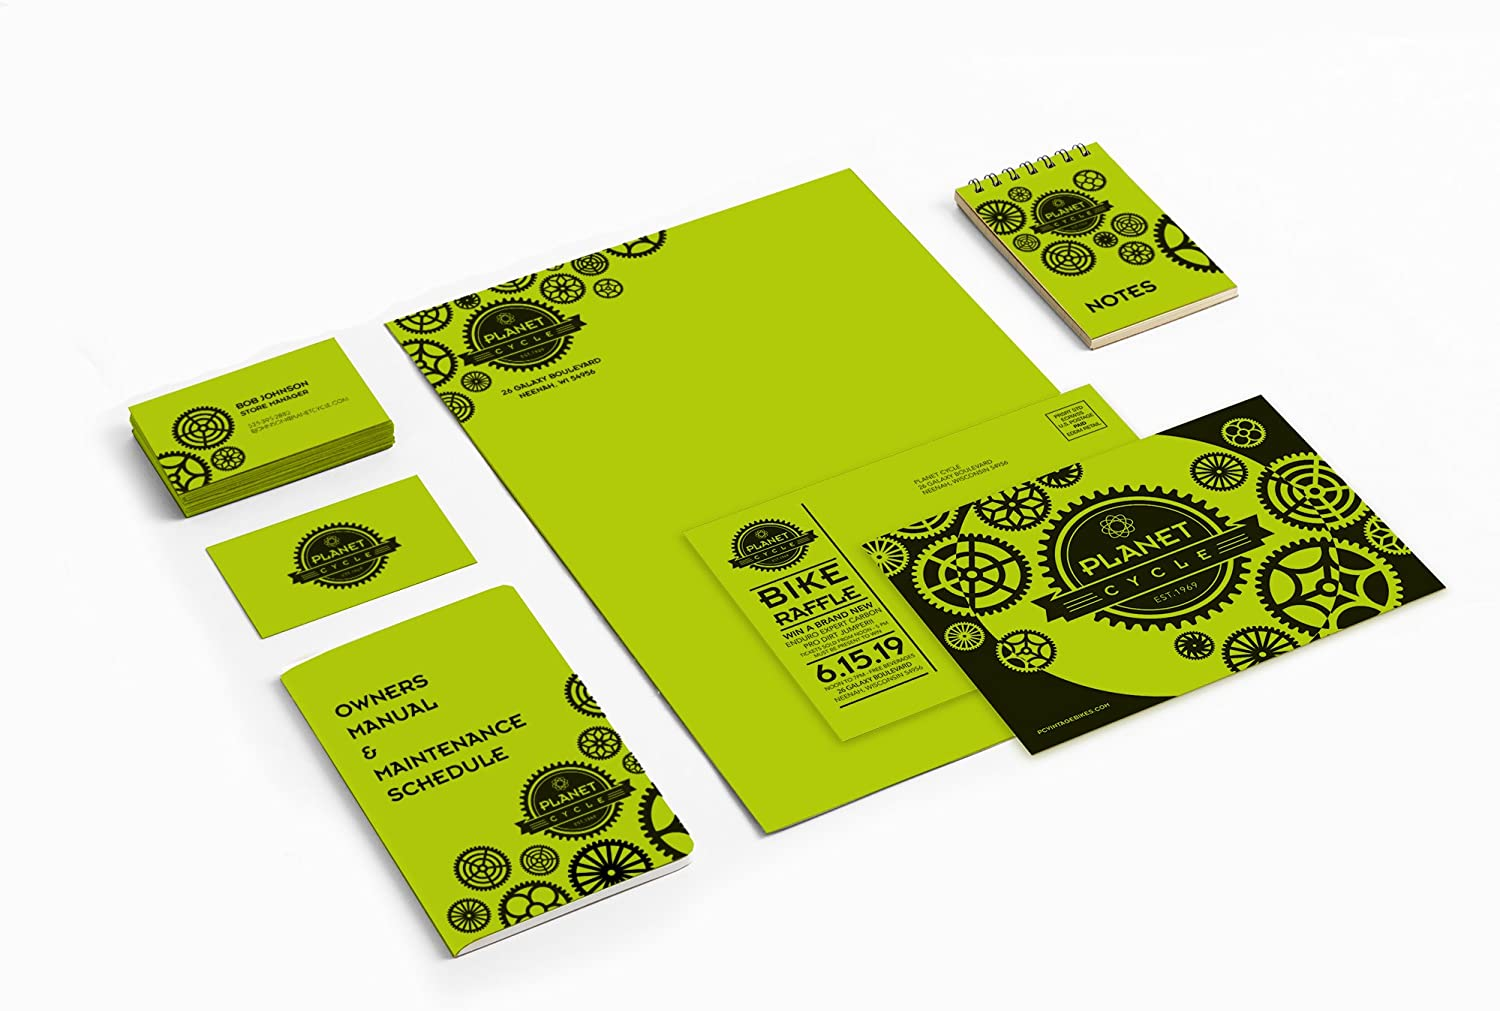 """Neenah Astrobrights Color Paper, 8.5"""" x 11"""", 24 lb/89 gsm, Terra Green, 500 Sheets (21788) : Cardstock Papers : Office Products"""